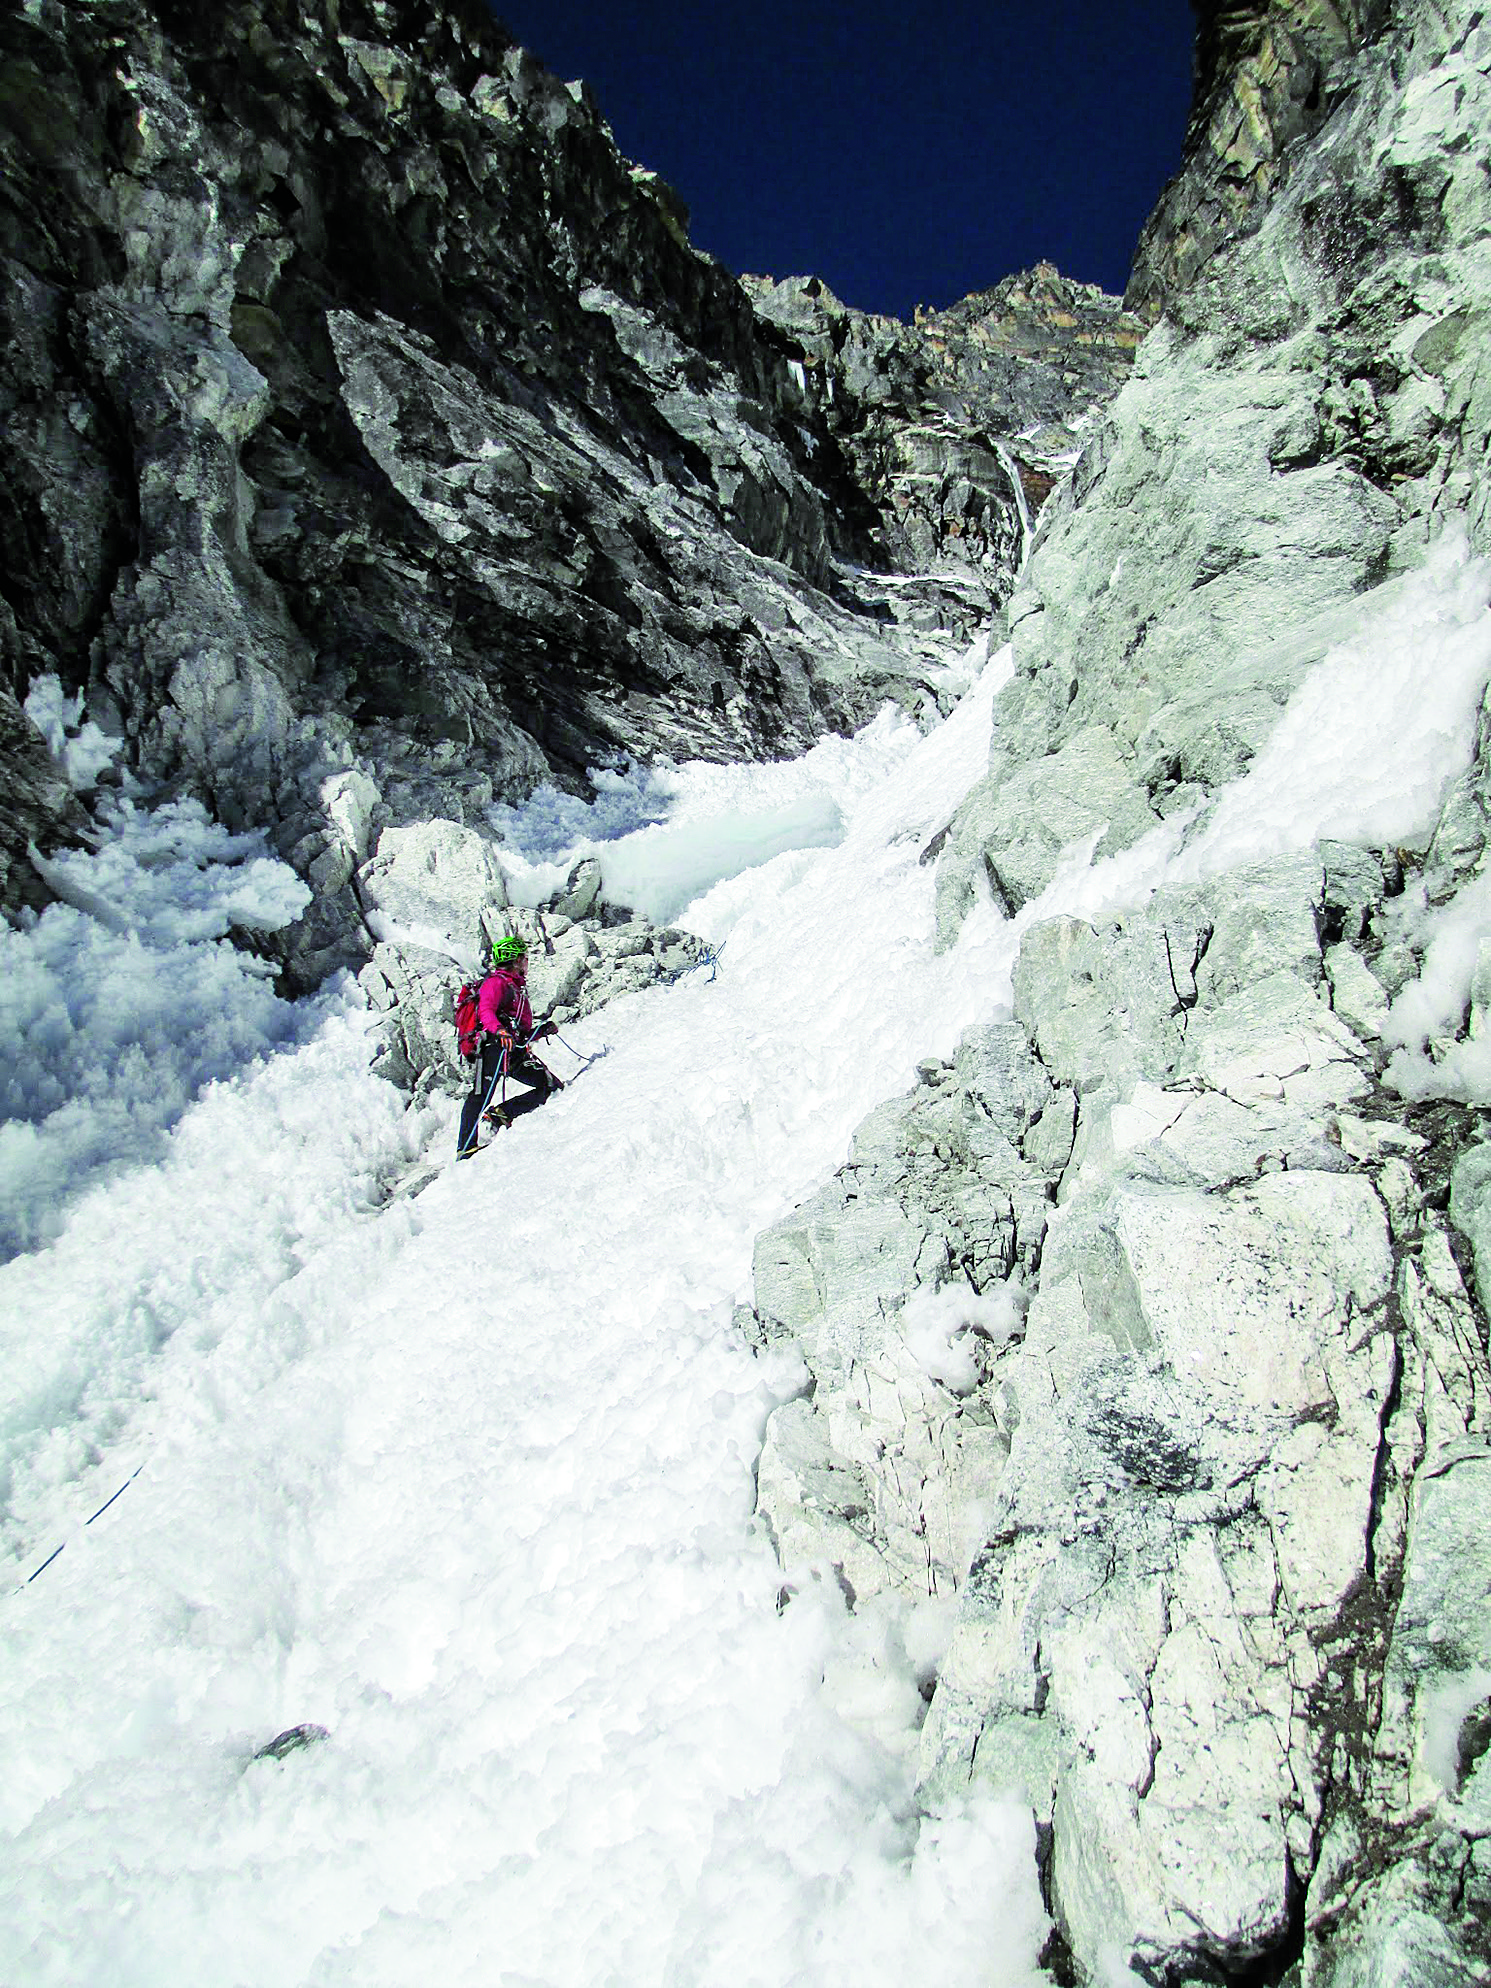 Anna Pfaff leads up the couloir on Lungaretse, Marlung Valley, Nepal. [Photo] Camilo Lopez